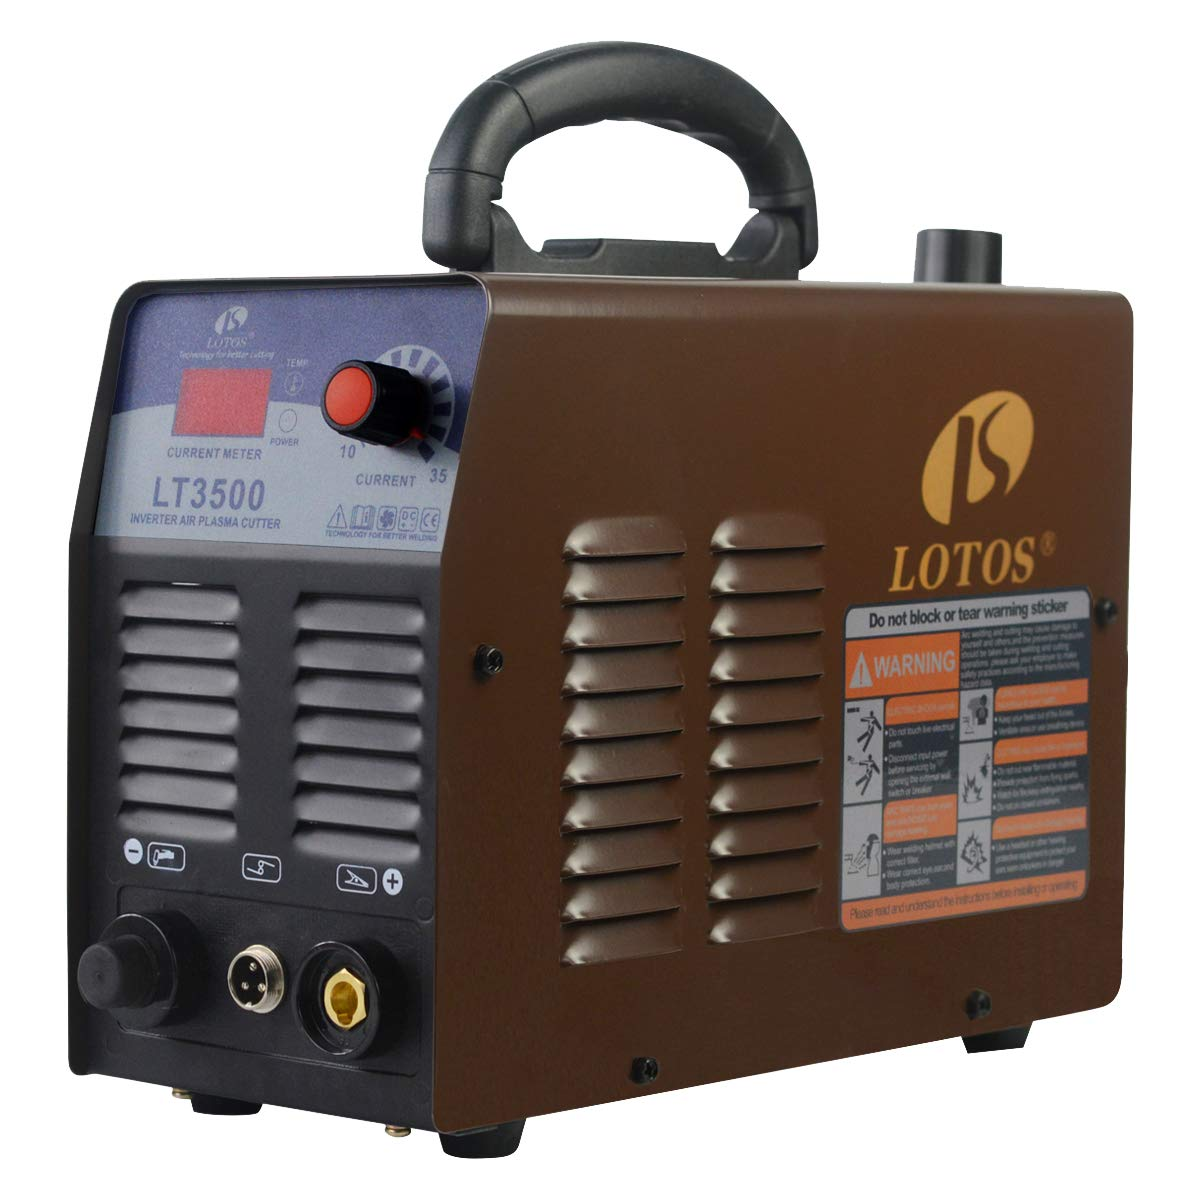 Product Name: Lotos LT3500 35Amp Air Plasma Cutter, 2/5 Inch Clean Cut, 110V/120V Input with Pre Installed NPT Quick Connector, Portable & Easy Quick Setup Metal Cutter by Lotos Technology